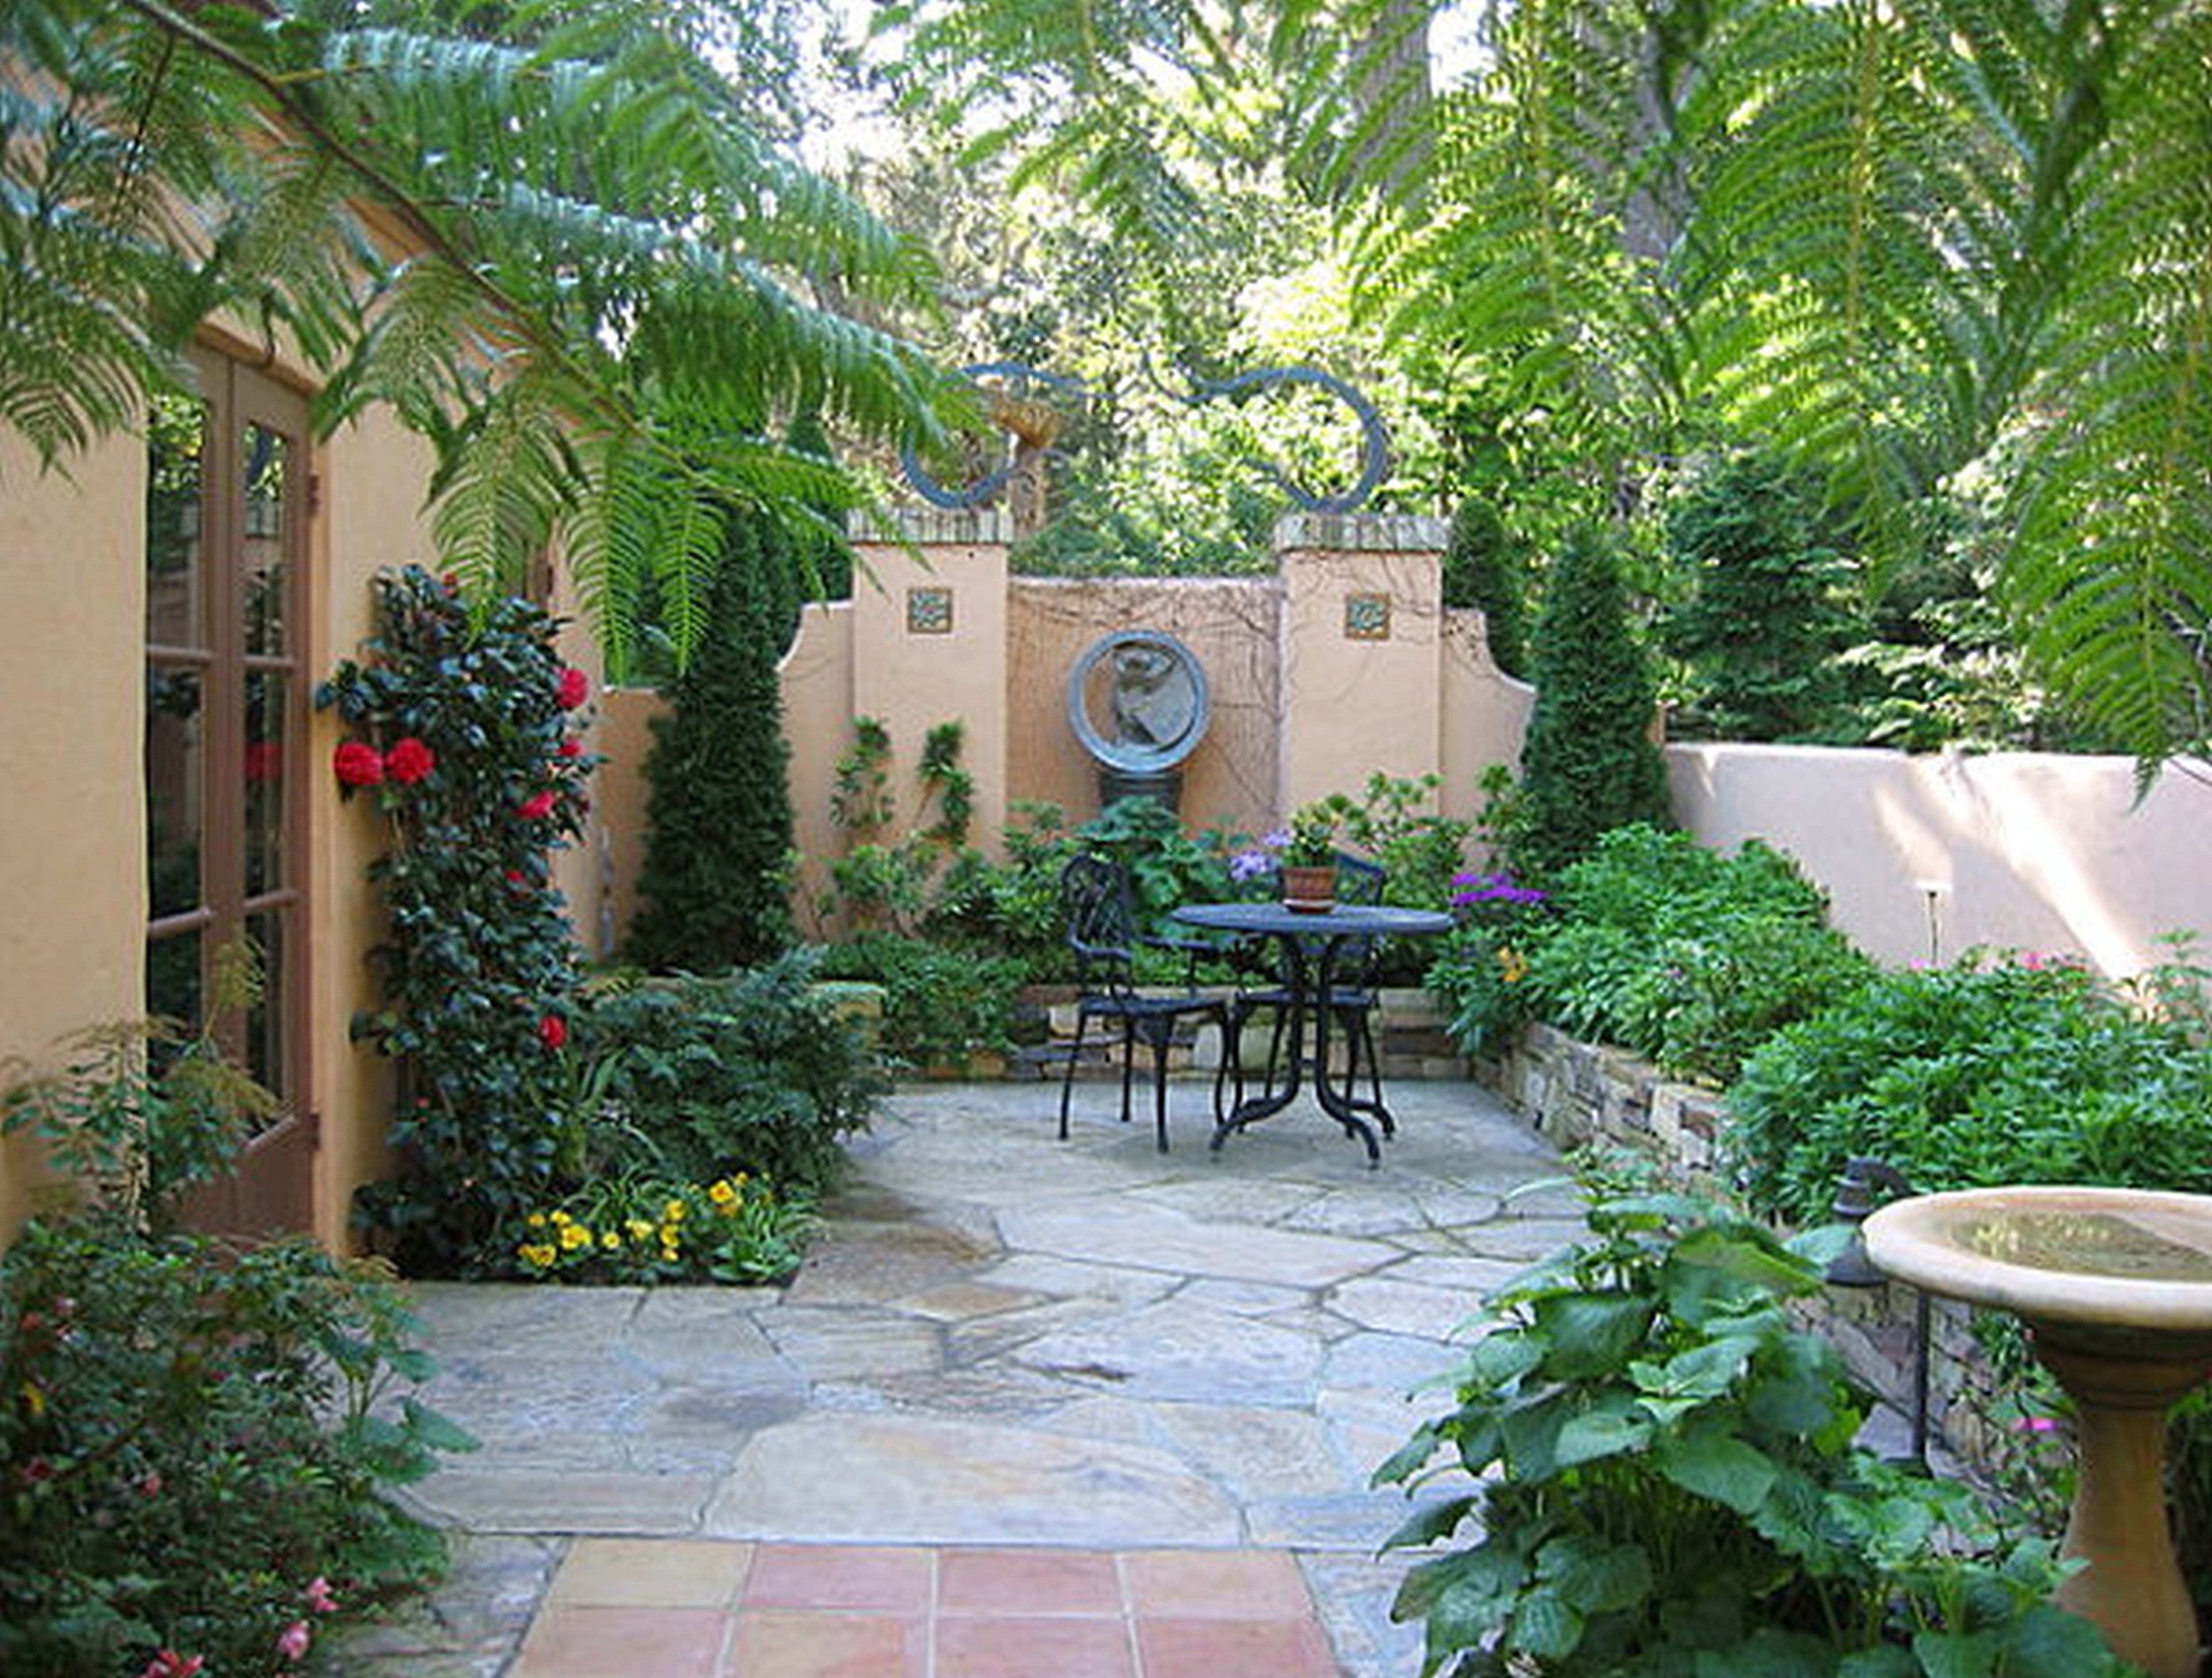 23.SIMPHOME.COM A tropical landscaping ideas for small yards southern homes